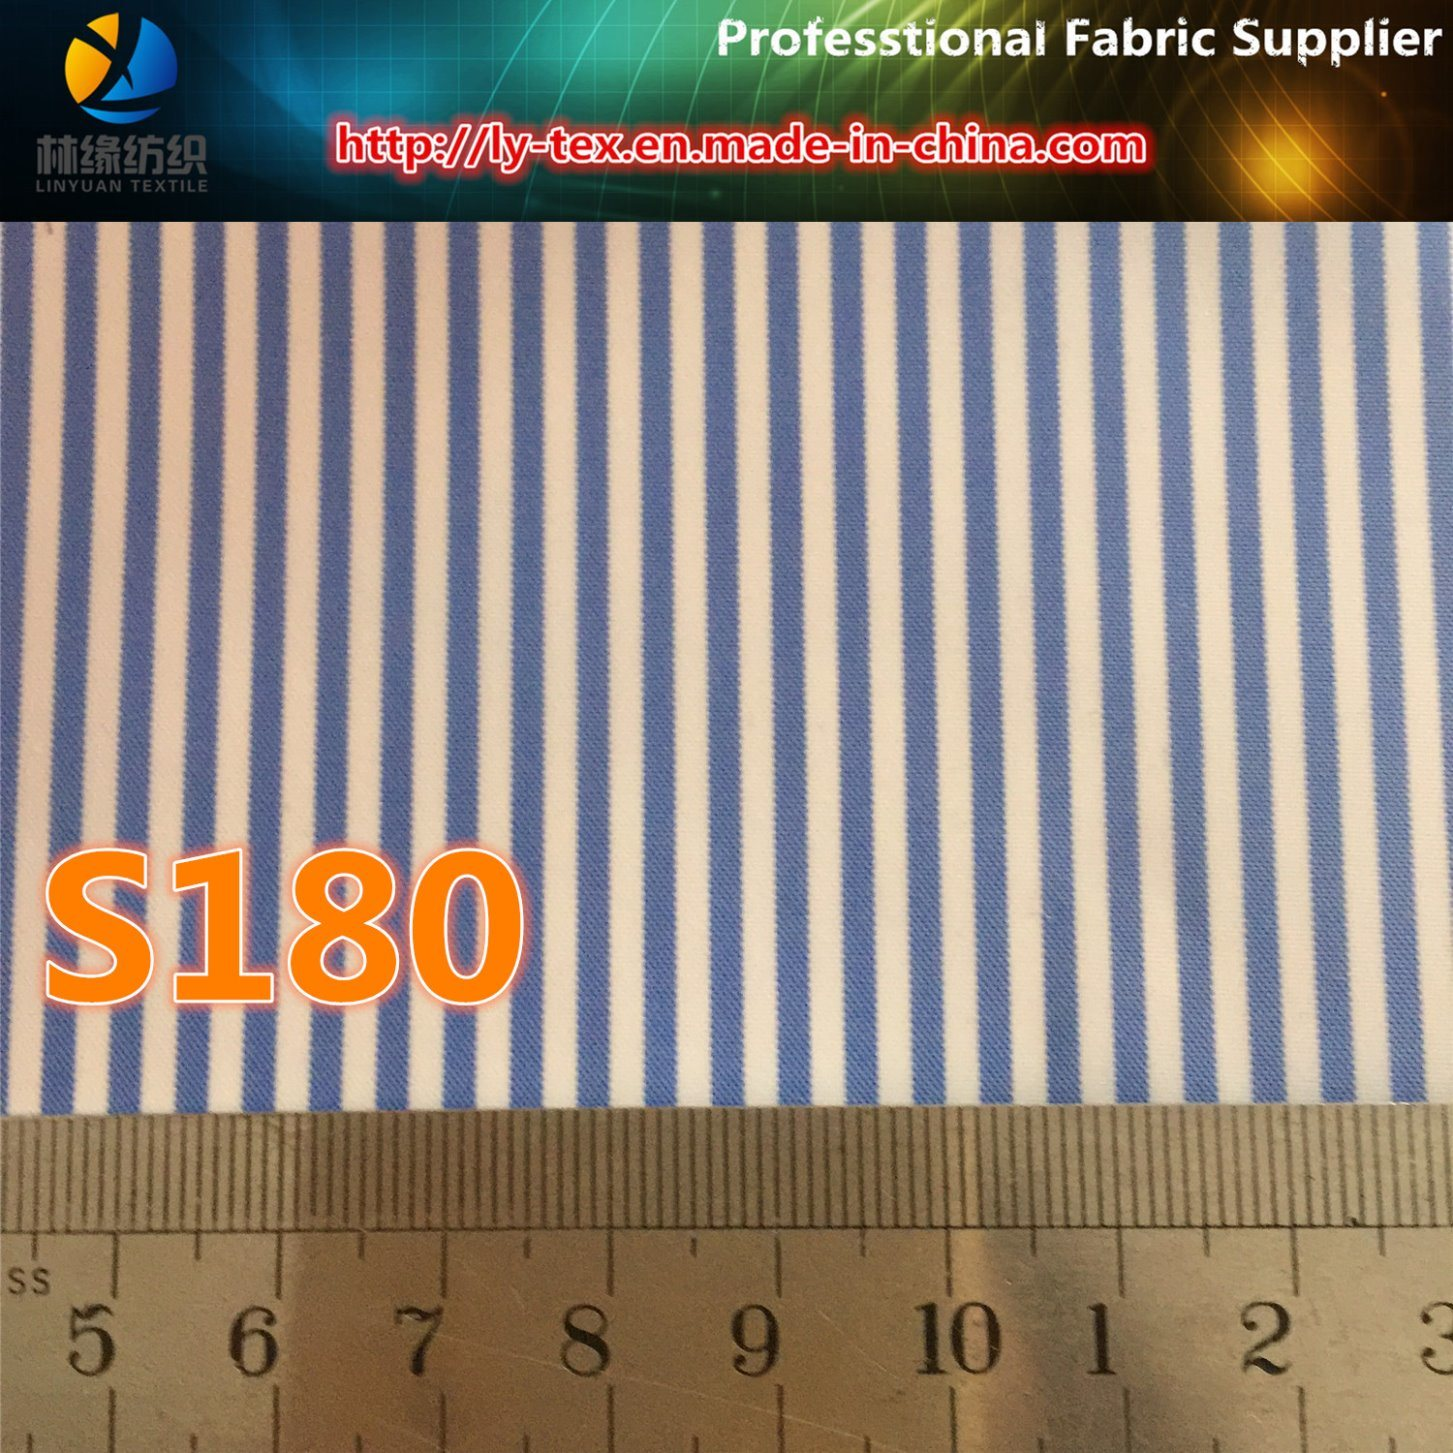 Upscale Men Suit Lining in Polyester Woven Stripe Fabric (S180.181)